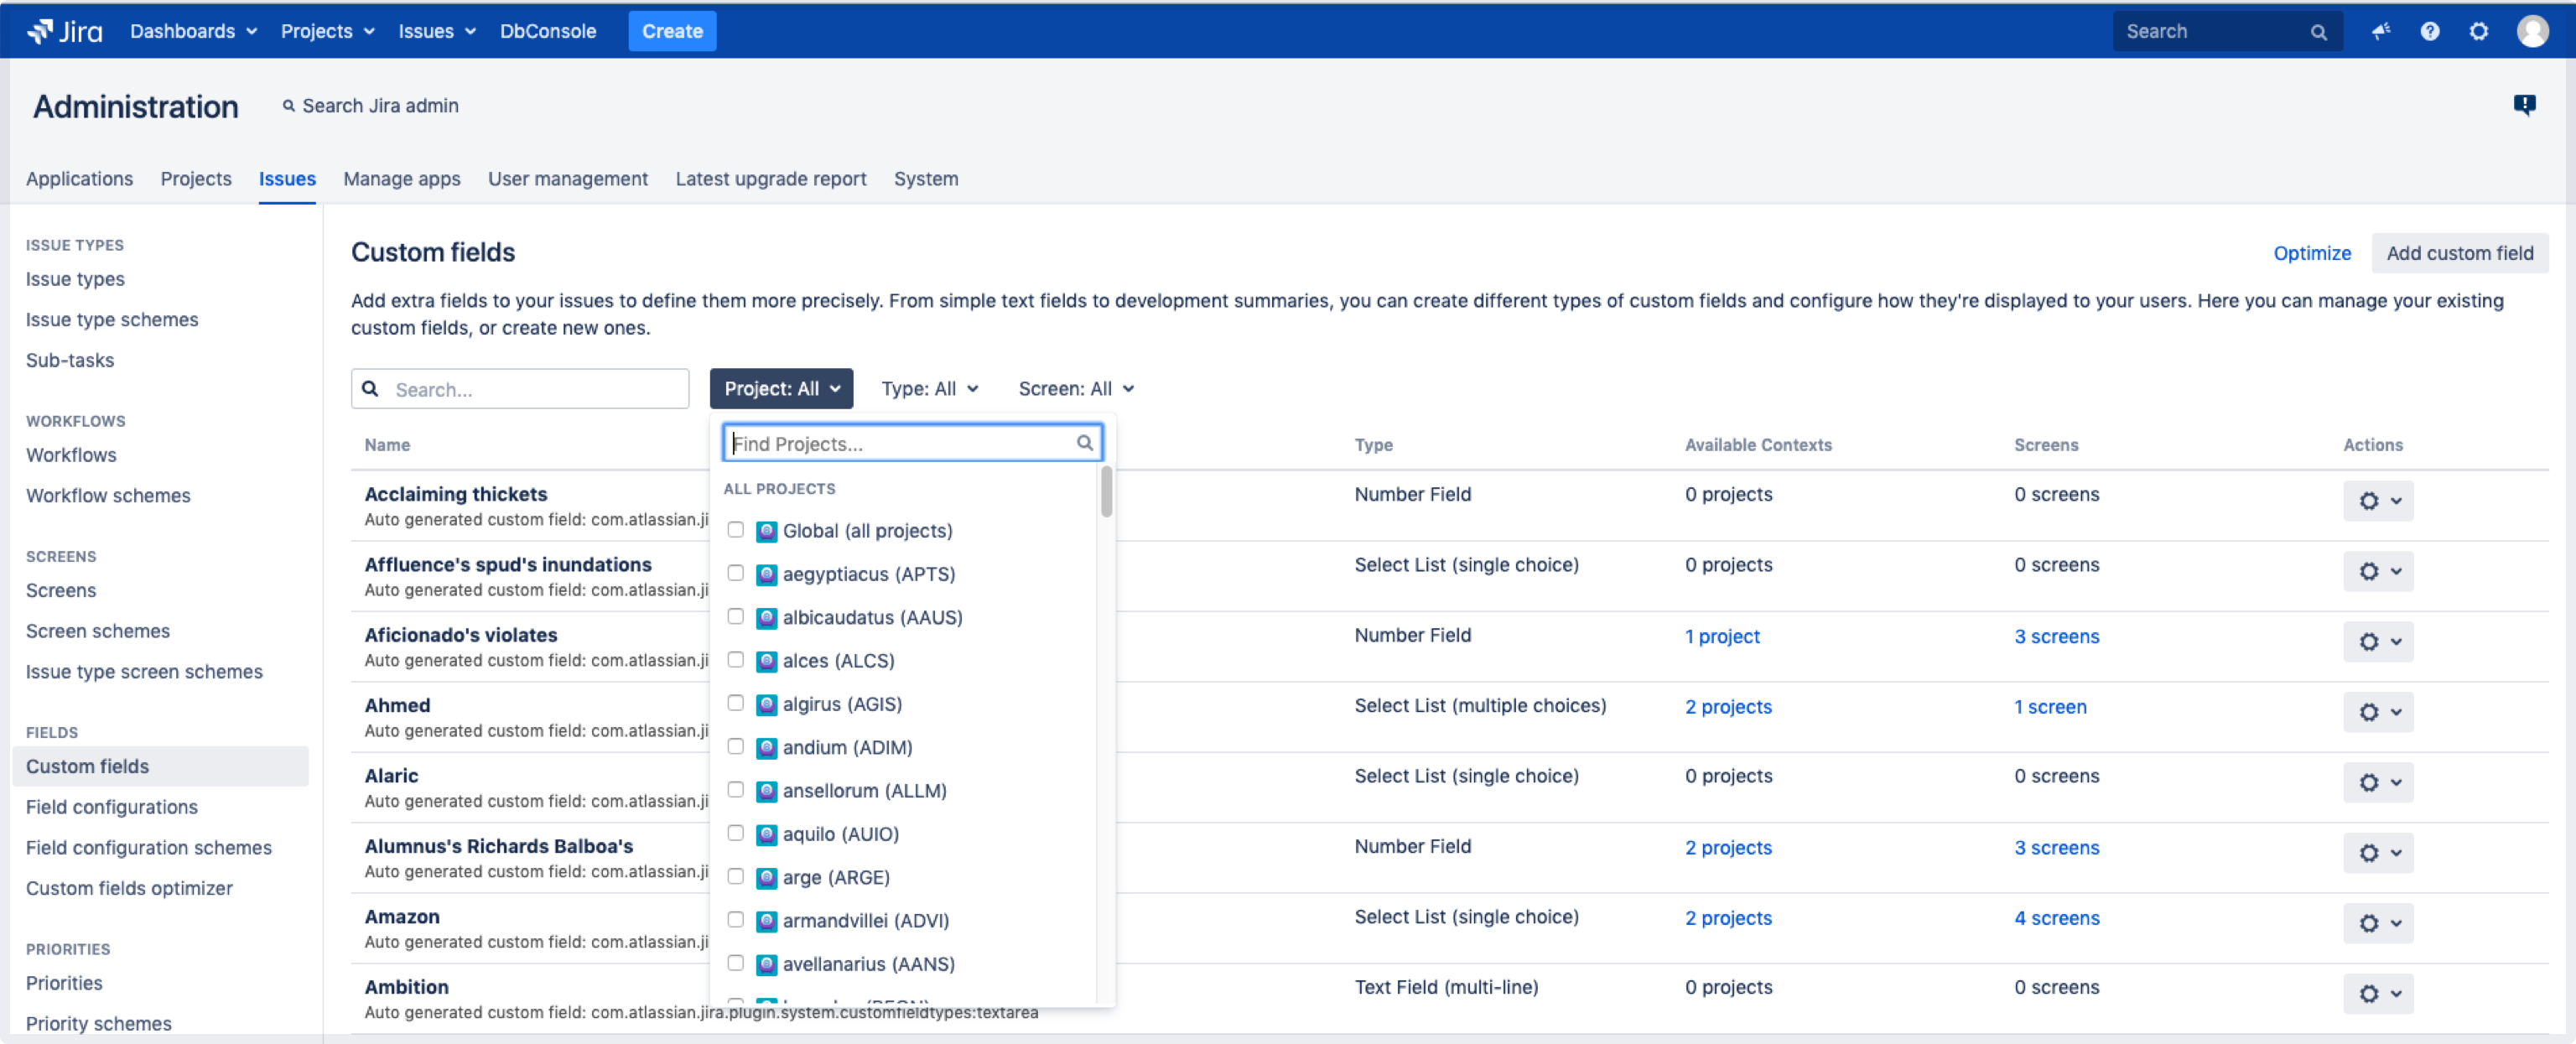 Custom field screen in Jira with search for custom fields by projects filter open